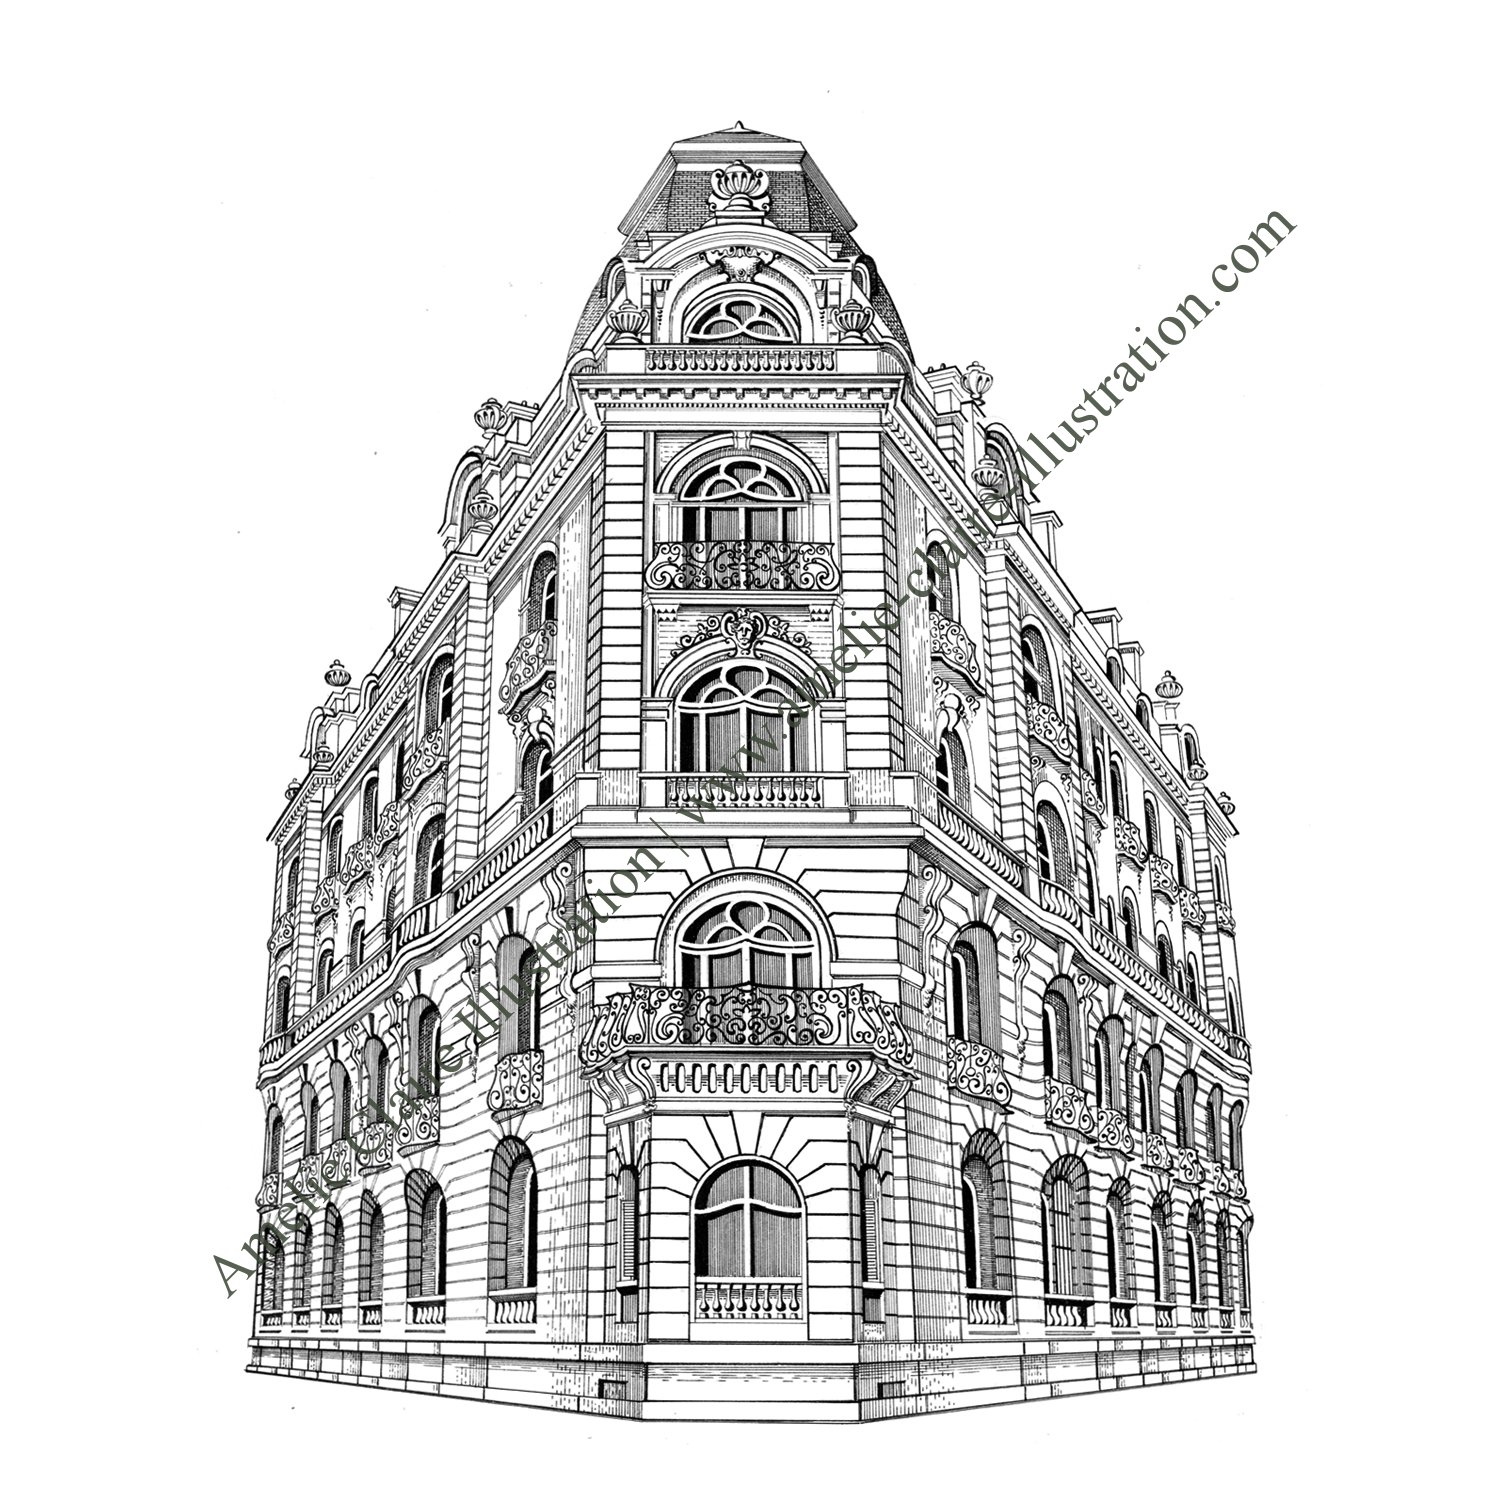 Favori Immeuble Haussmannien - Amelie Claire illustration traditionnelle VV92